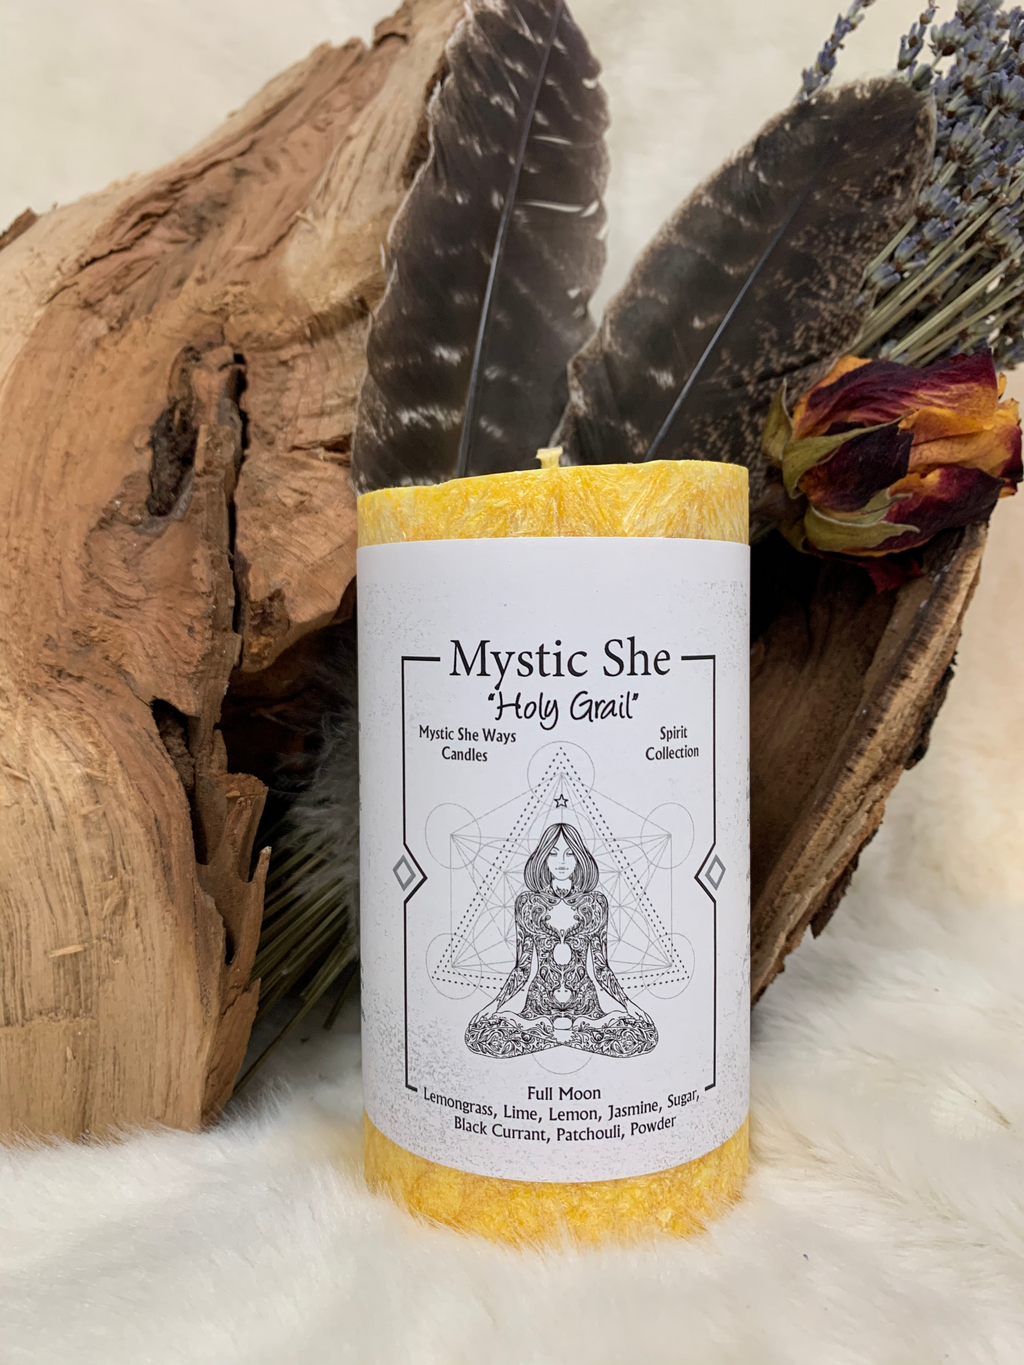 DIVINE FEMININE, MYSTIC SHE, CANDLE, HOLY GRAIL, HOLY SEPULCHRE, RESURECTION